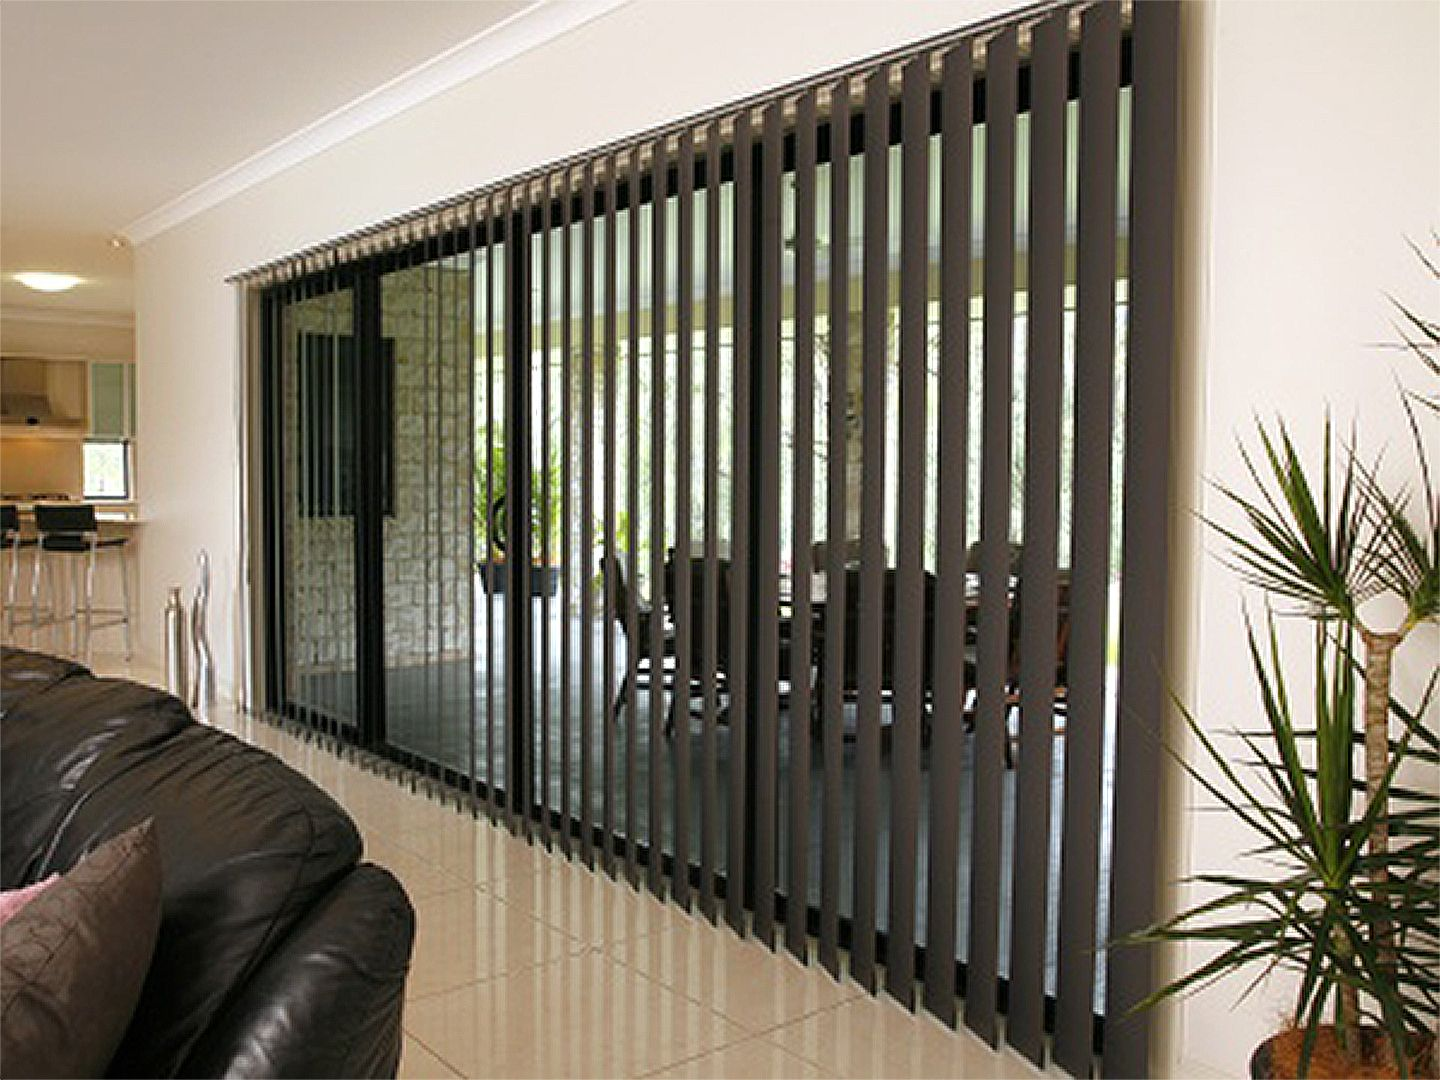 Vertical blinds to control both light level and privacy